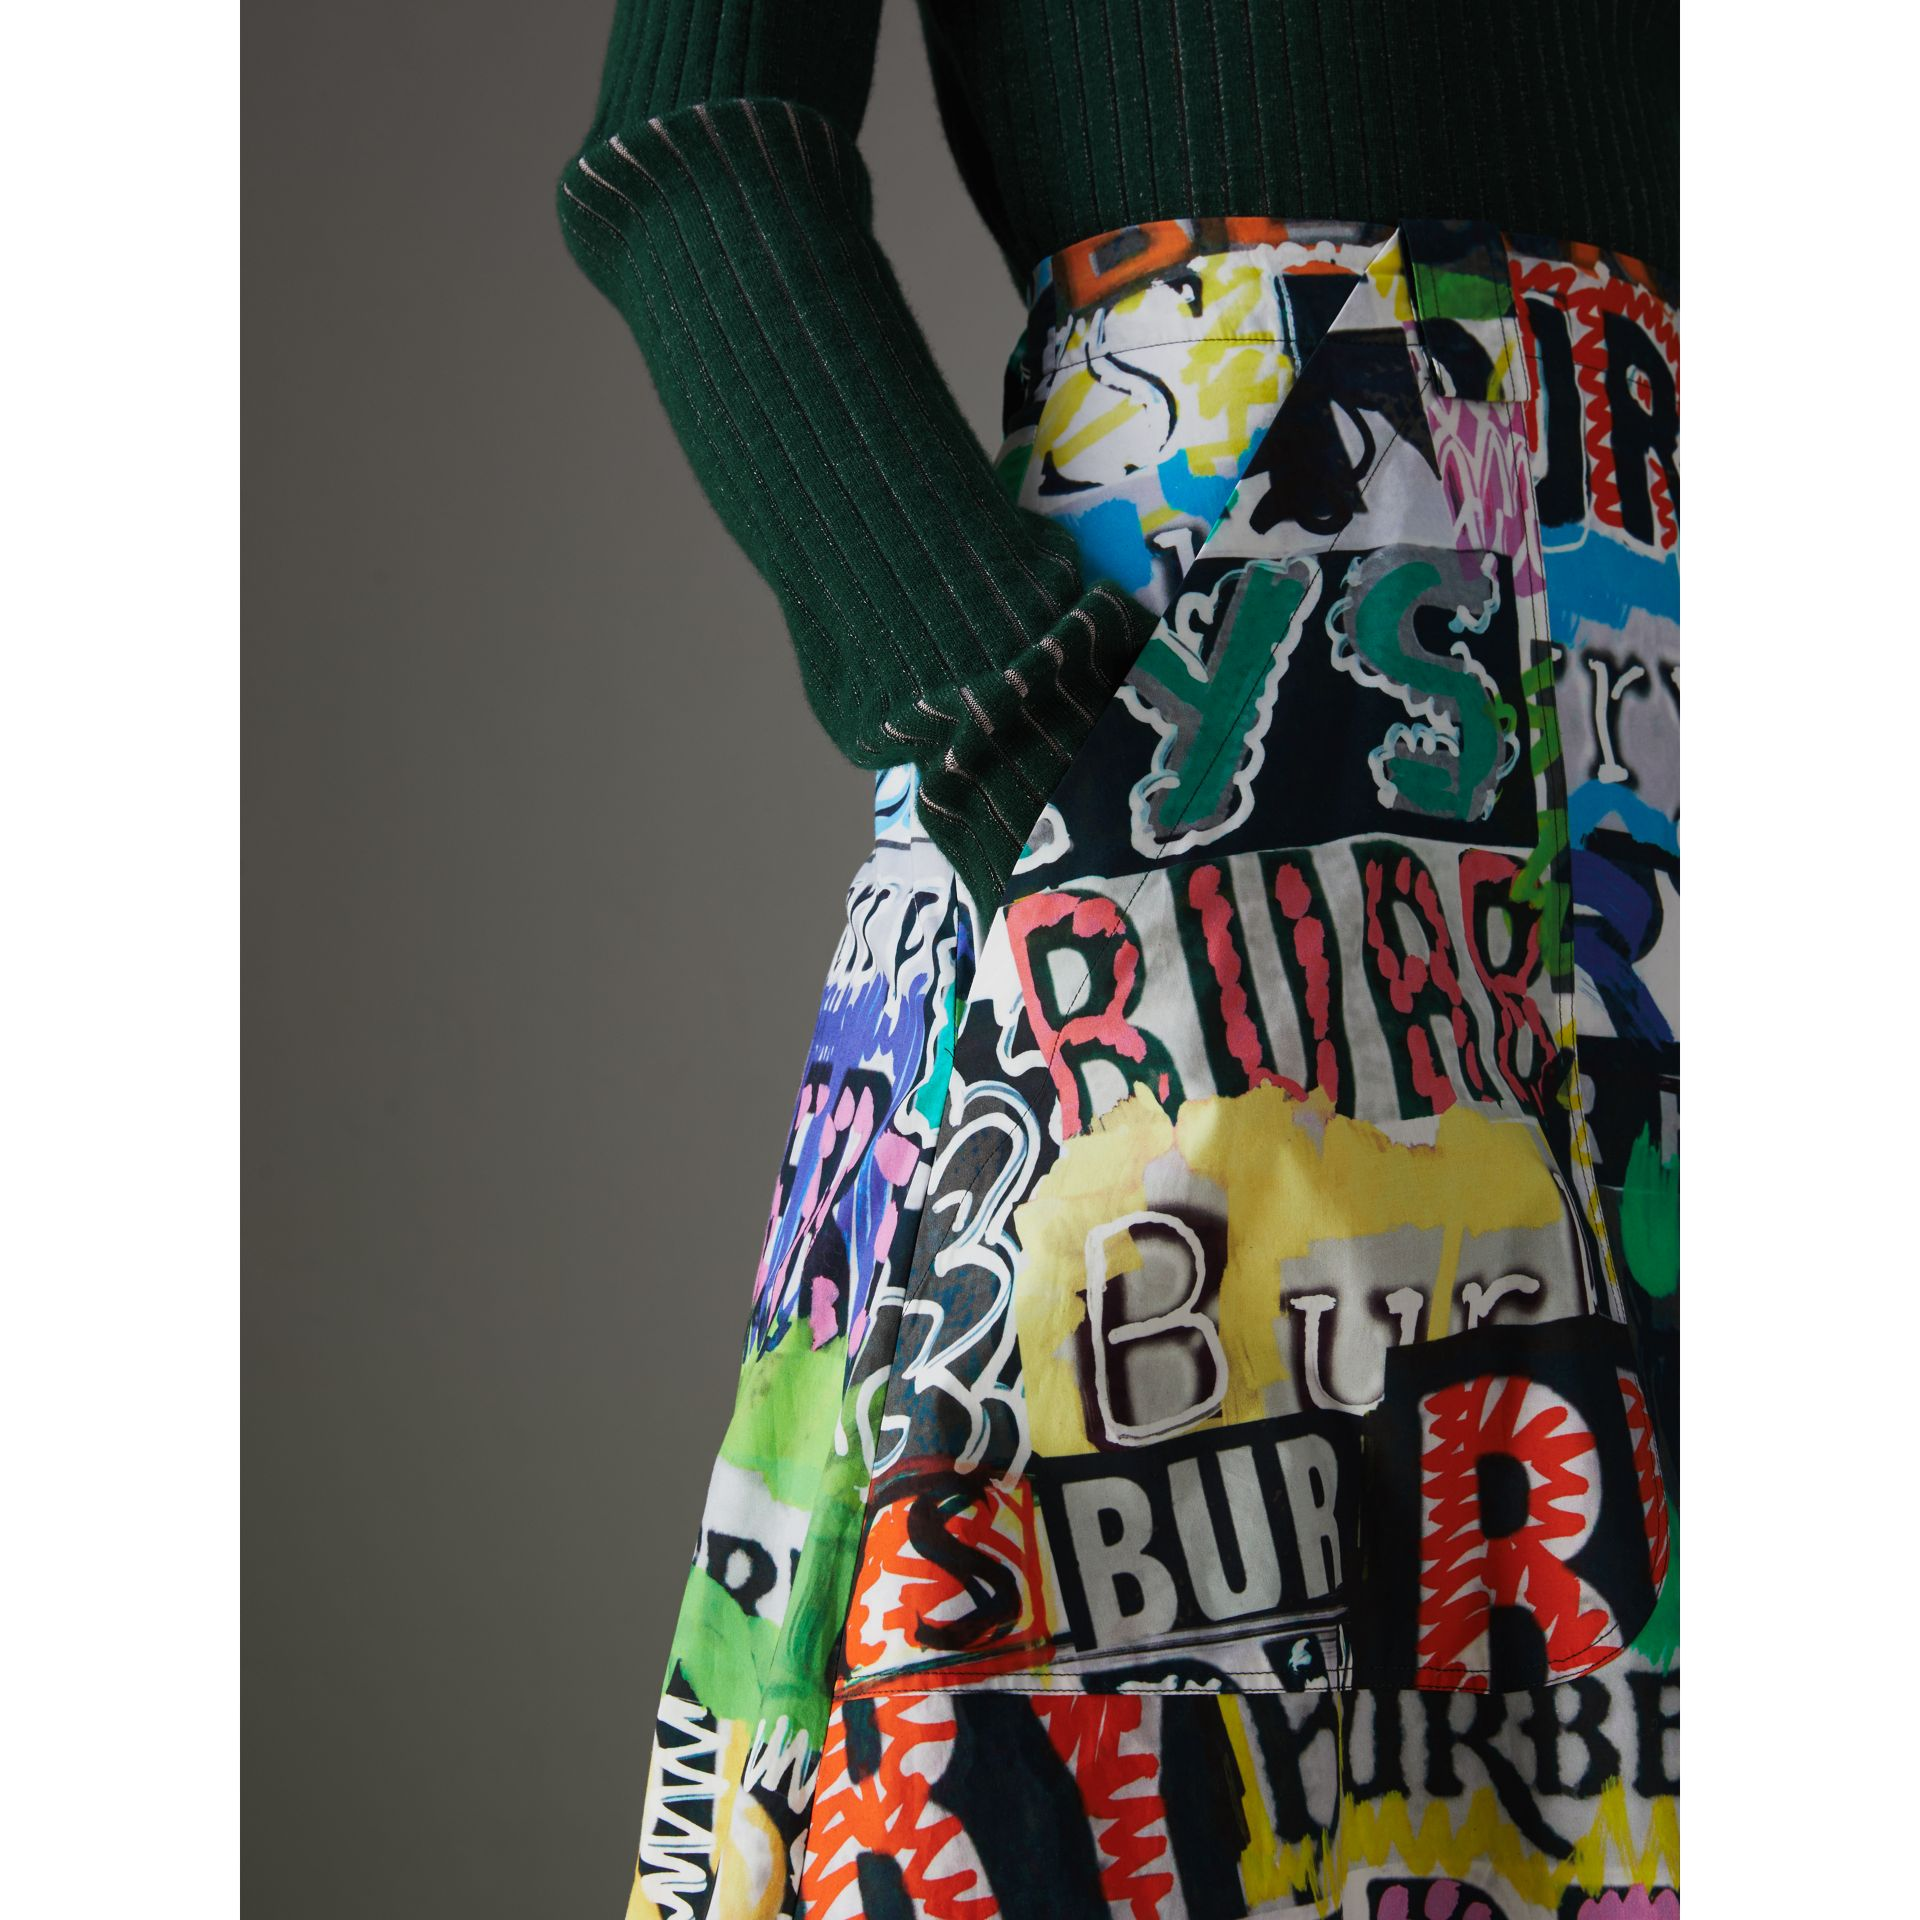 Logo Print Cotton A-line Skirt in Multicolour - Women | Burberry - gallery image 1